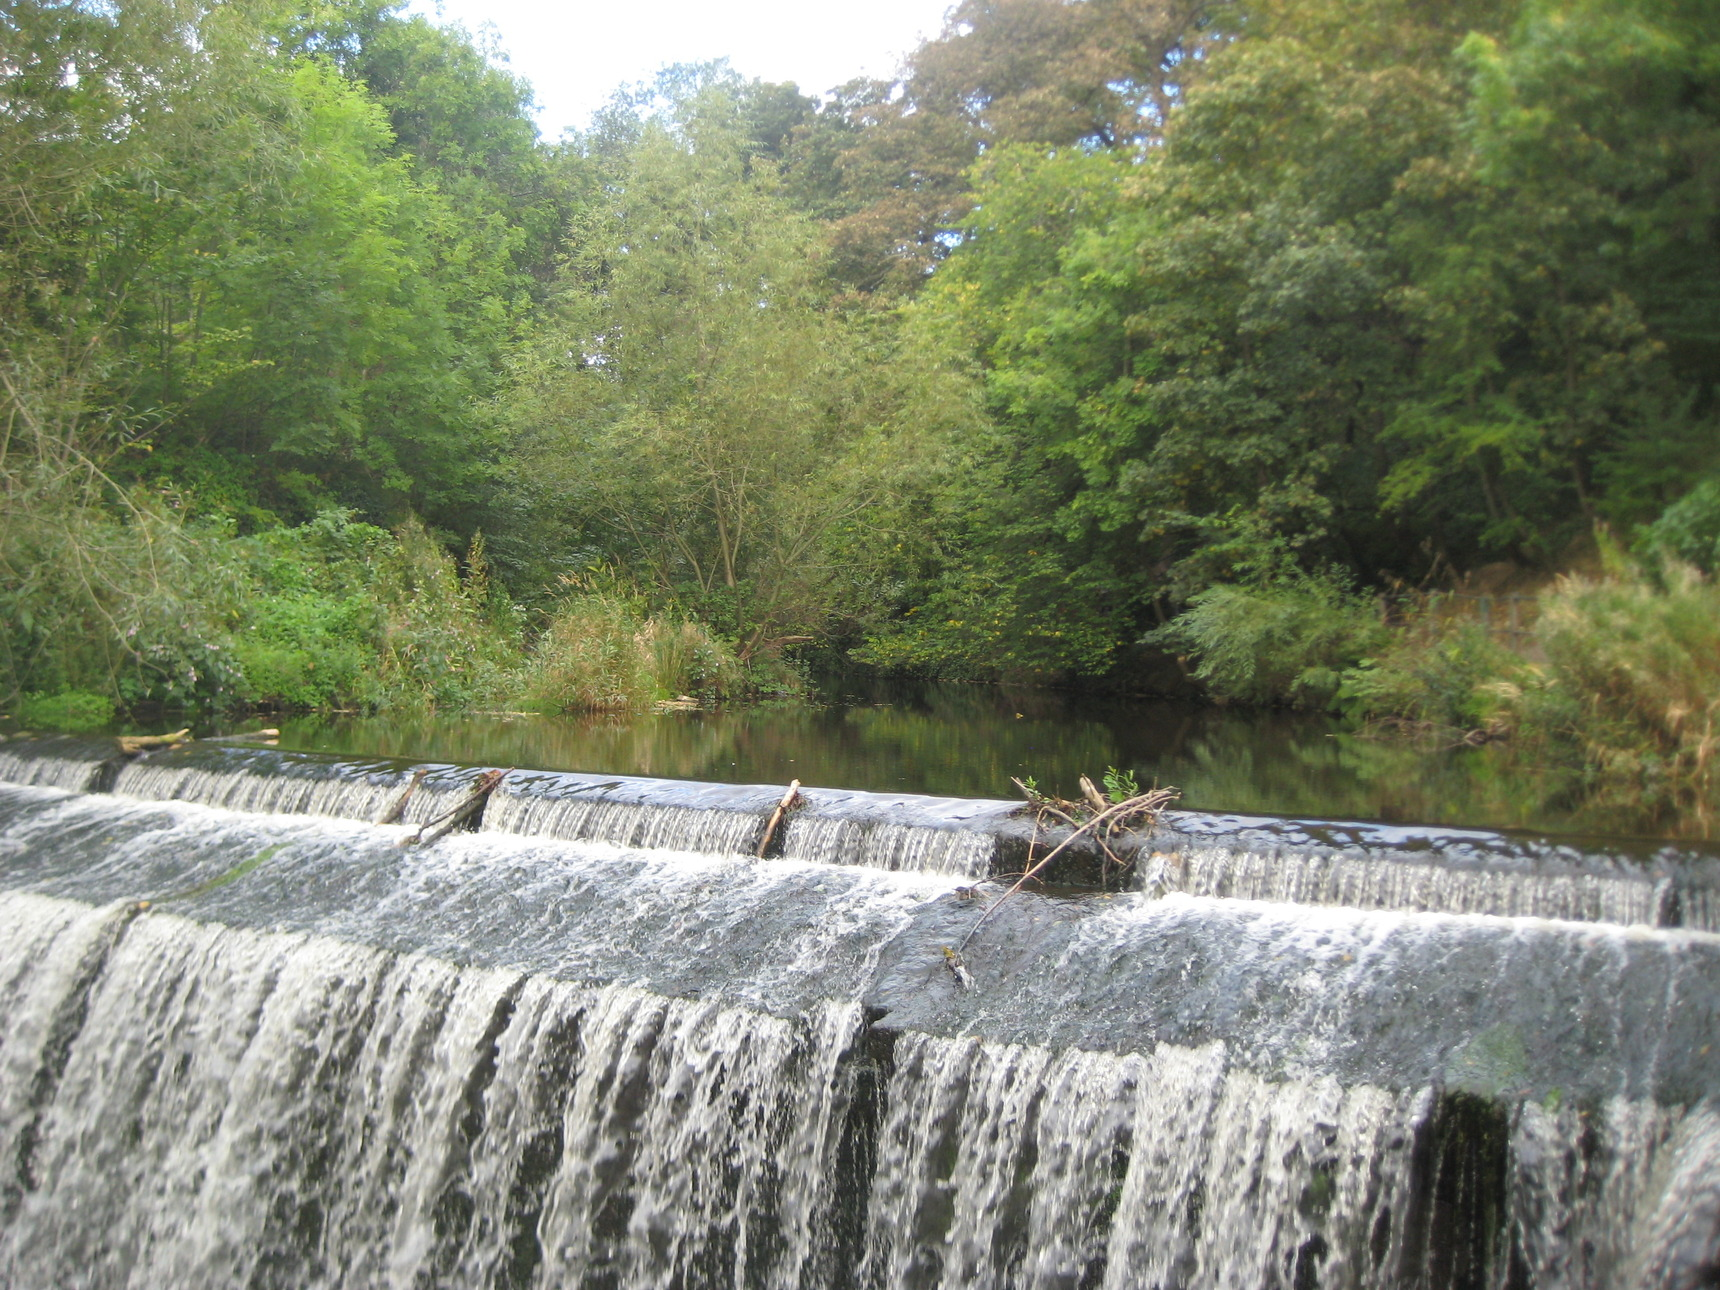 The Dean Village Tannery Falls and the Hedgie